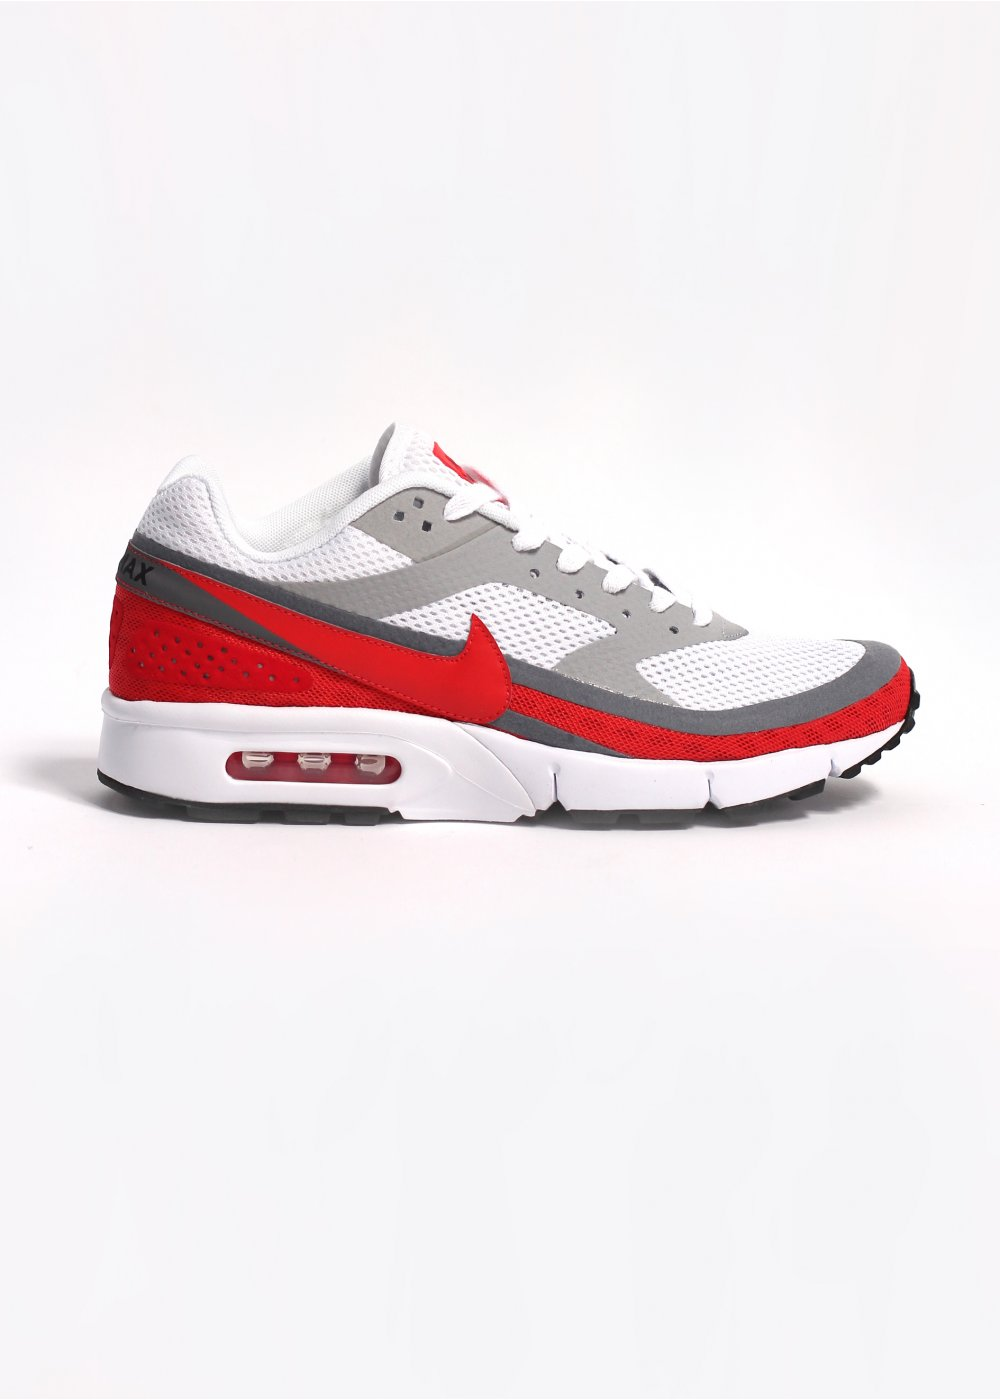 separation shoes 06a9e 88aa8 Air Classic BW Gen II Trainers - White / Light Crimson